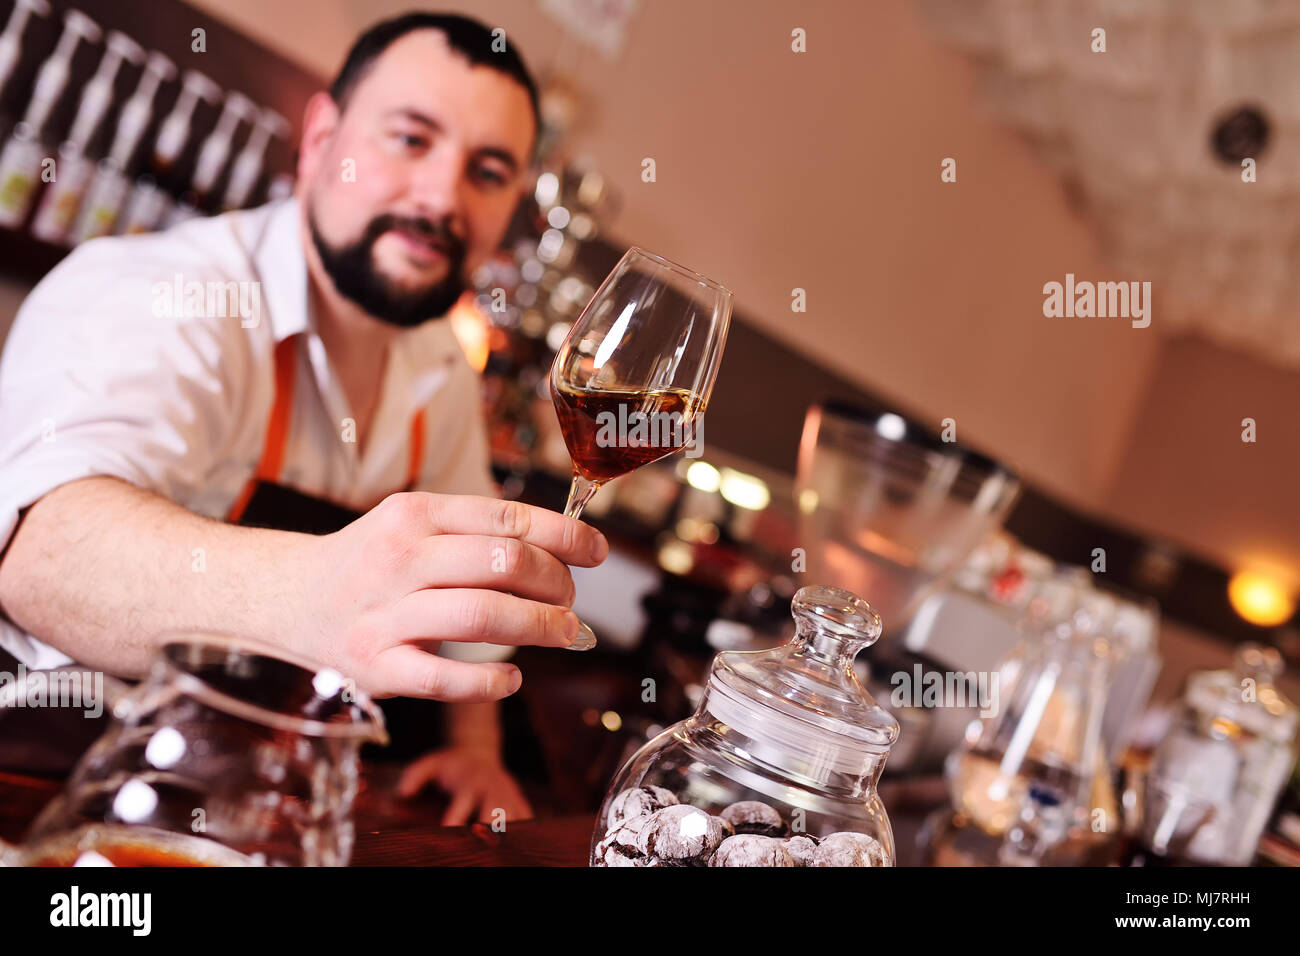 barista or coffee barman prepares coffee by an alternative method of brewing - pour over Stock Photo